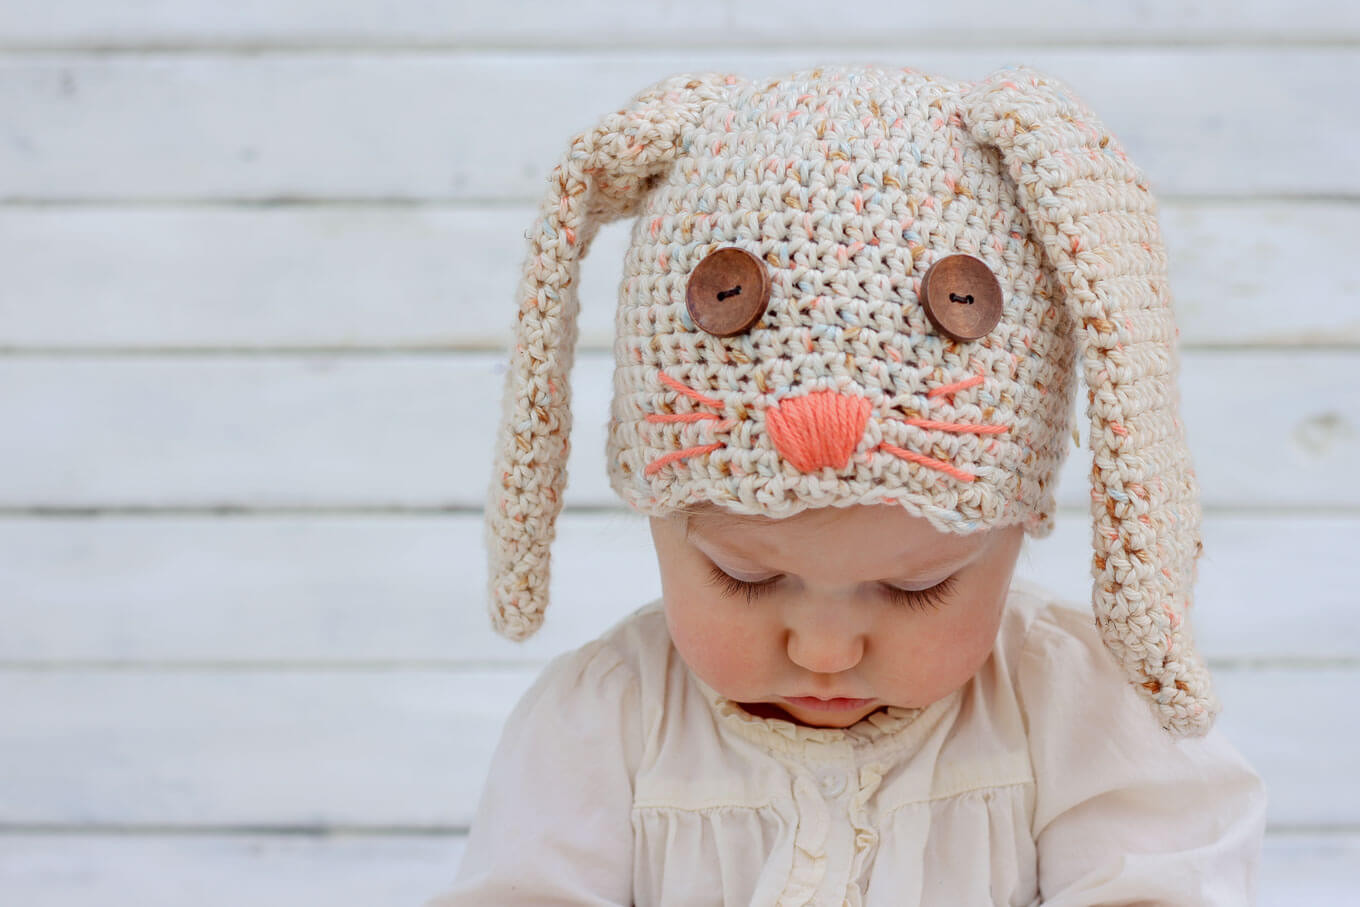 Awesome Free Crochet Baby toy Pattern An Amigurumi Carrot Rattle Crochet Bunny Hat Of Gorgeous 50 Photos Crochet Bunny Hat